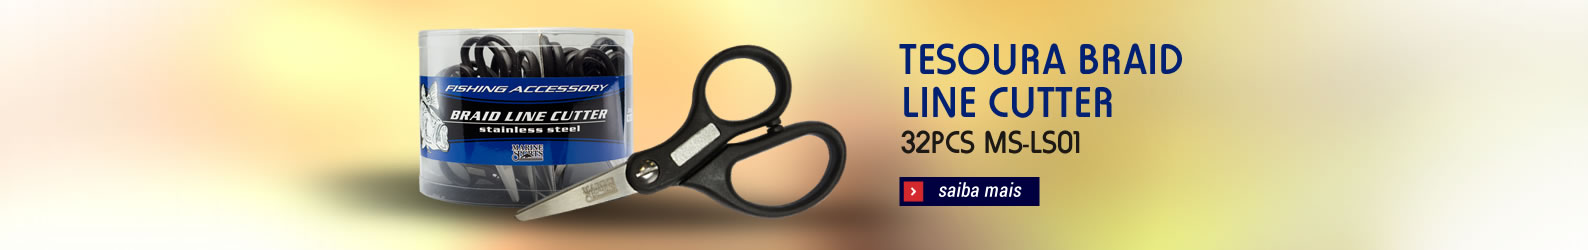 Tesoura Braid Line Cutter